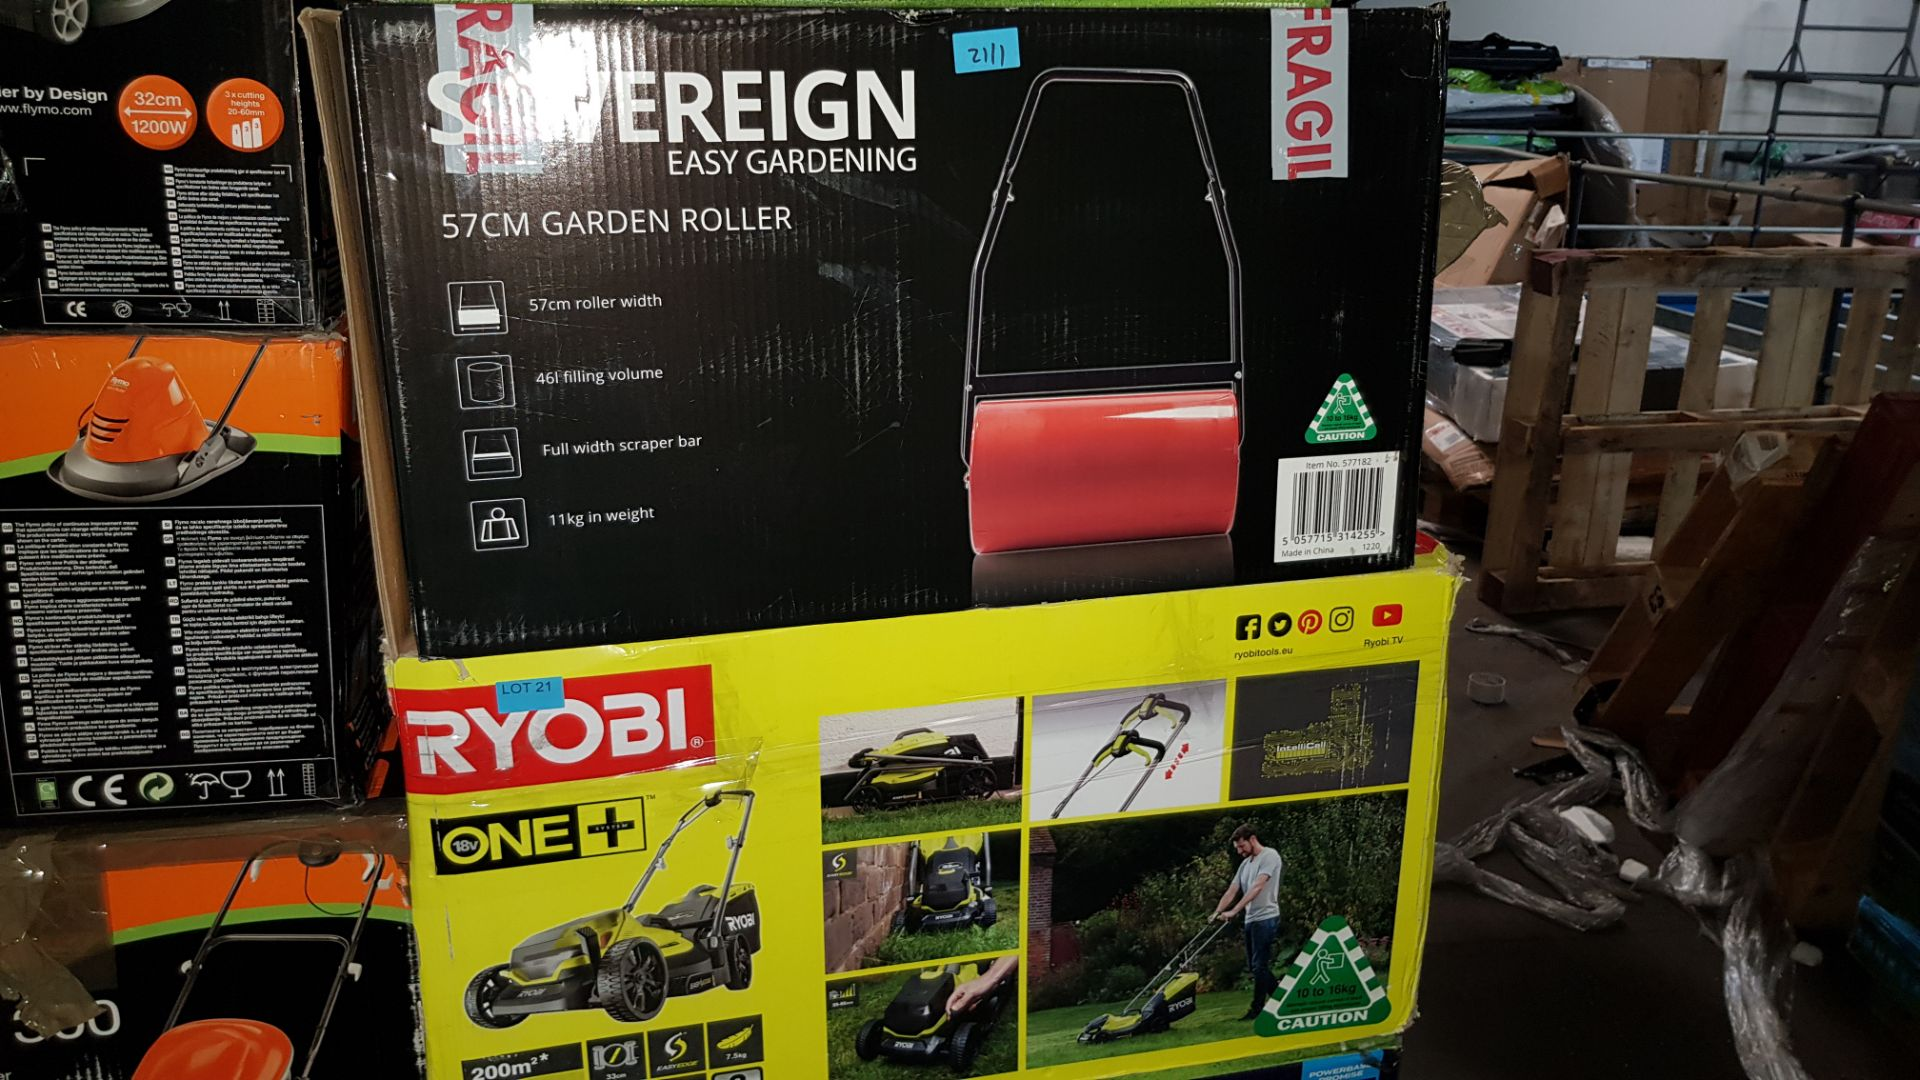 (P9) 2x Items. 1x Ryobi One + Cordless Lawnmower (No Battery Or Charger). 1x Sovereign 57cm Garden - Image 3 of 3